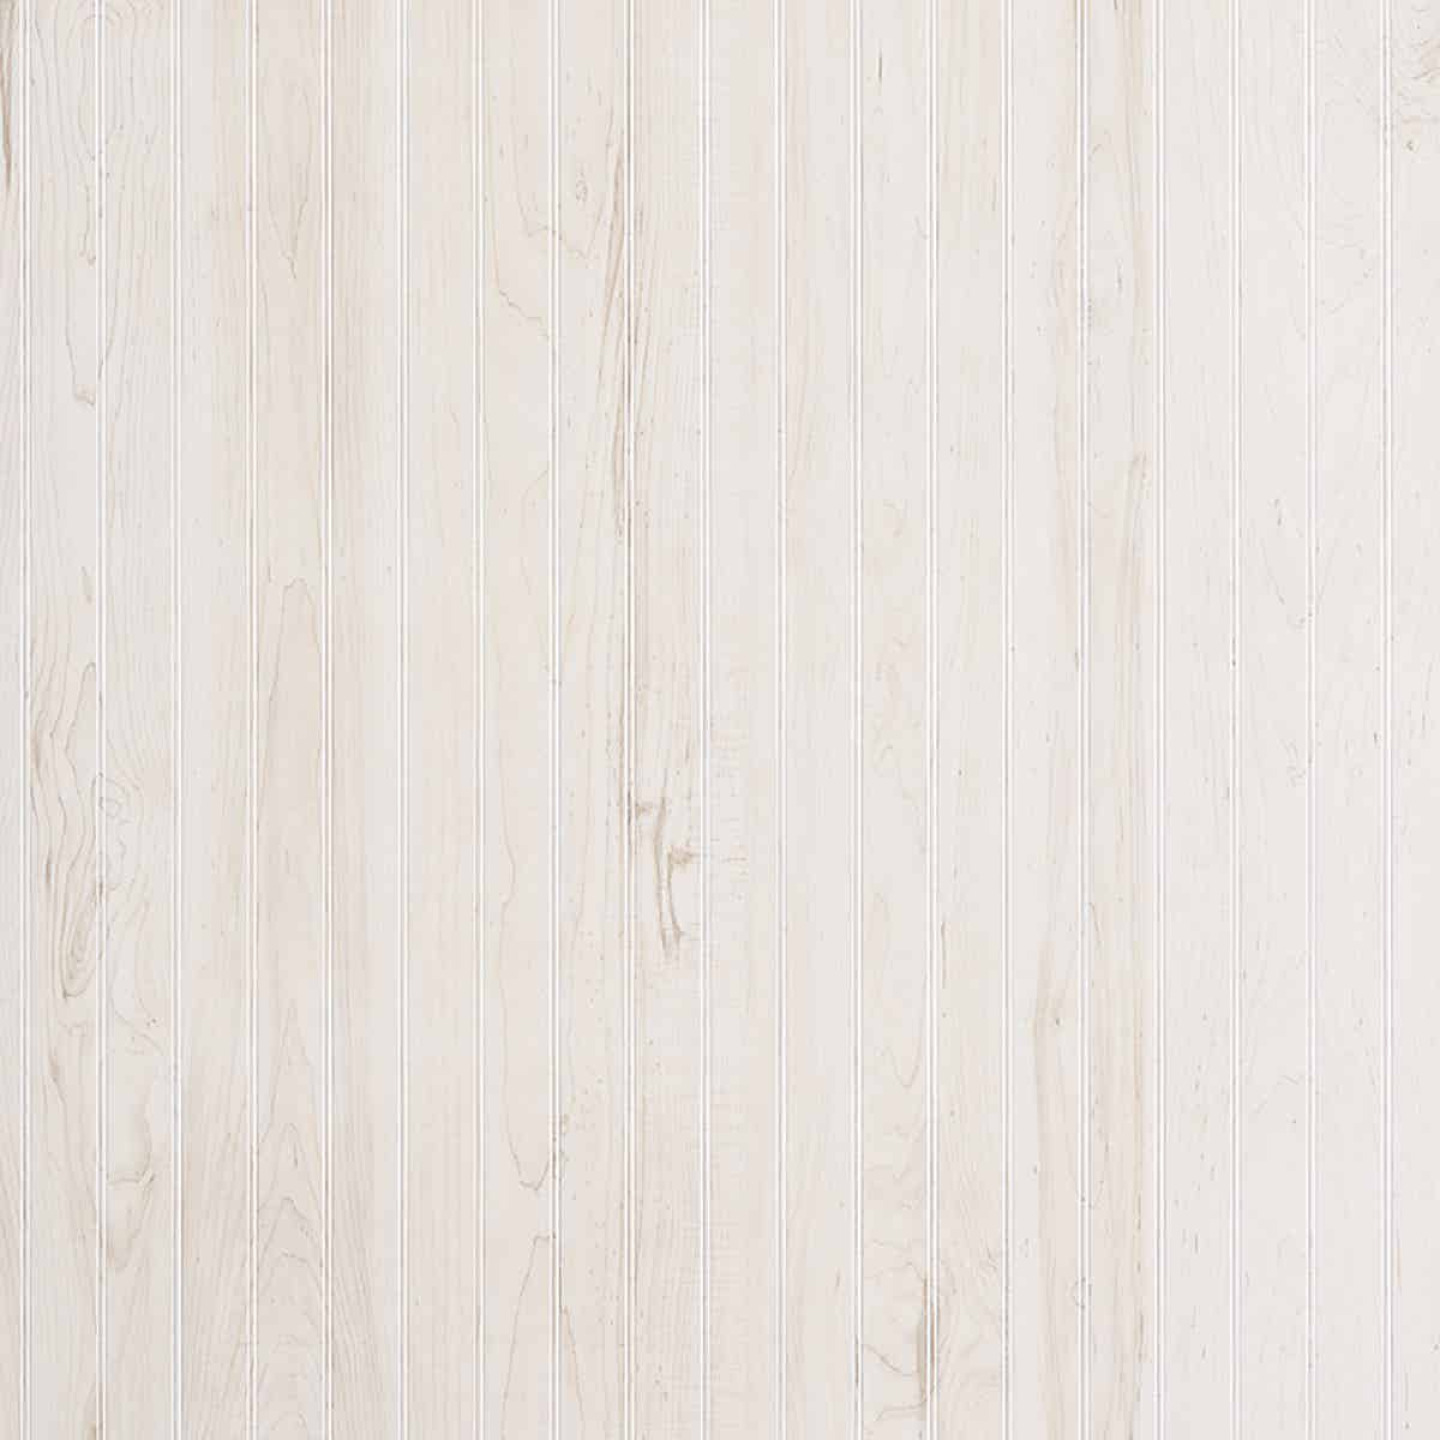 DPI 4 Ft. x 8 Ft. x 1/8 In. Frosted Maple Woodgrain Wall Paneling Image 3